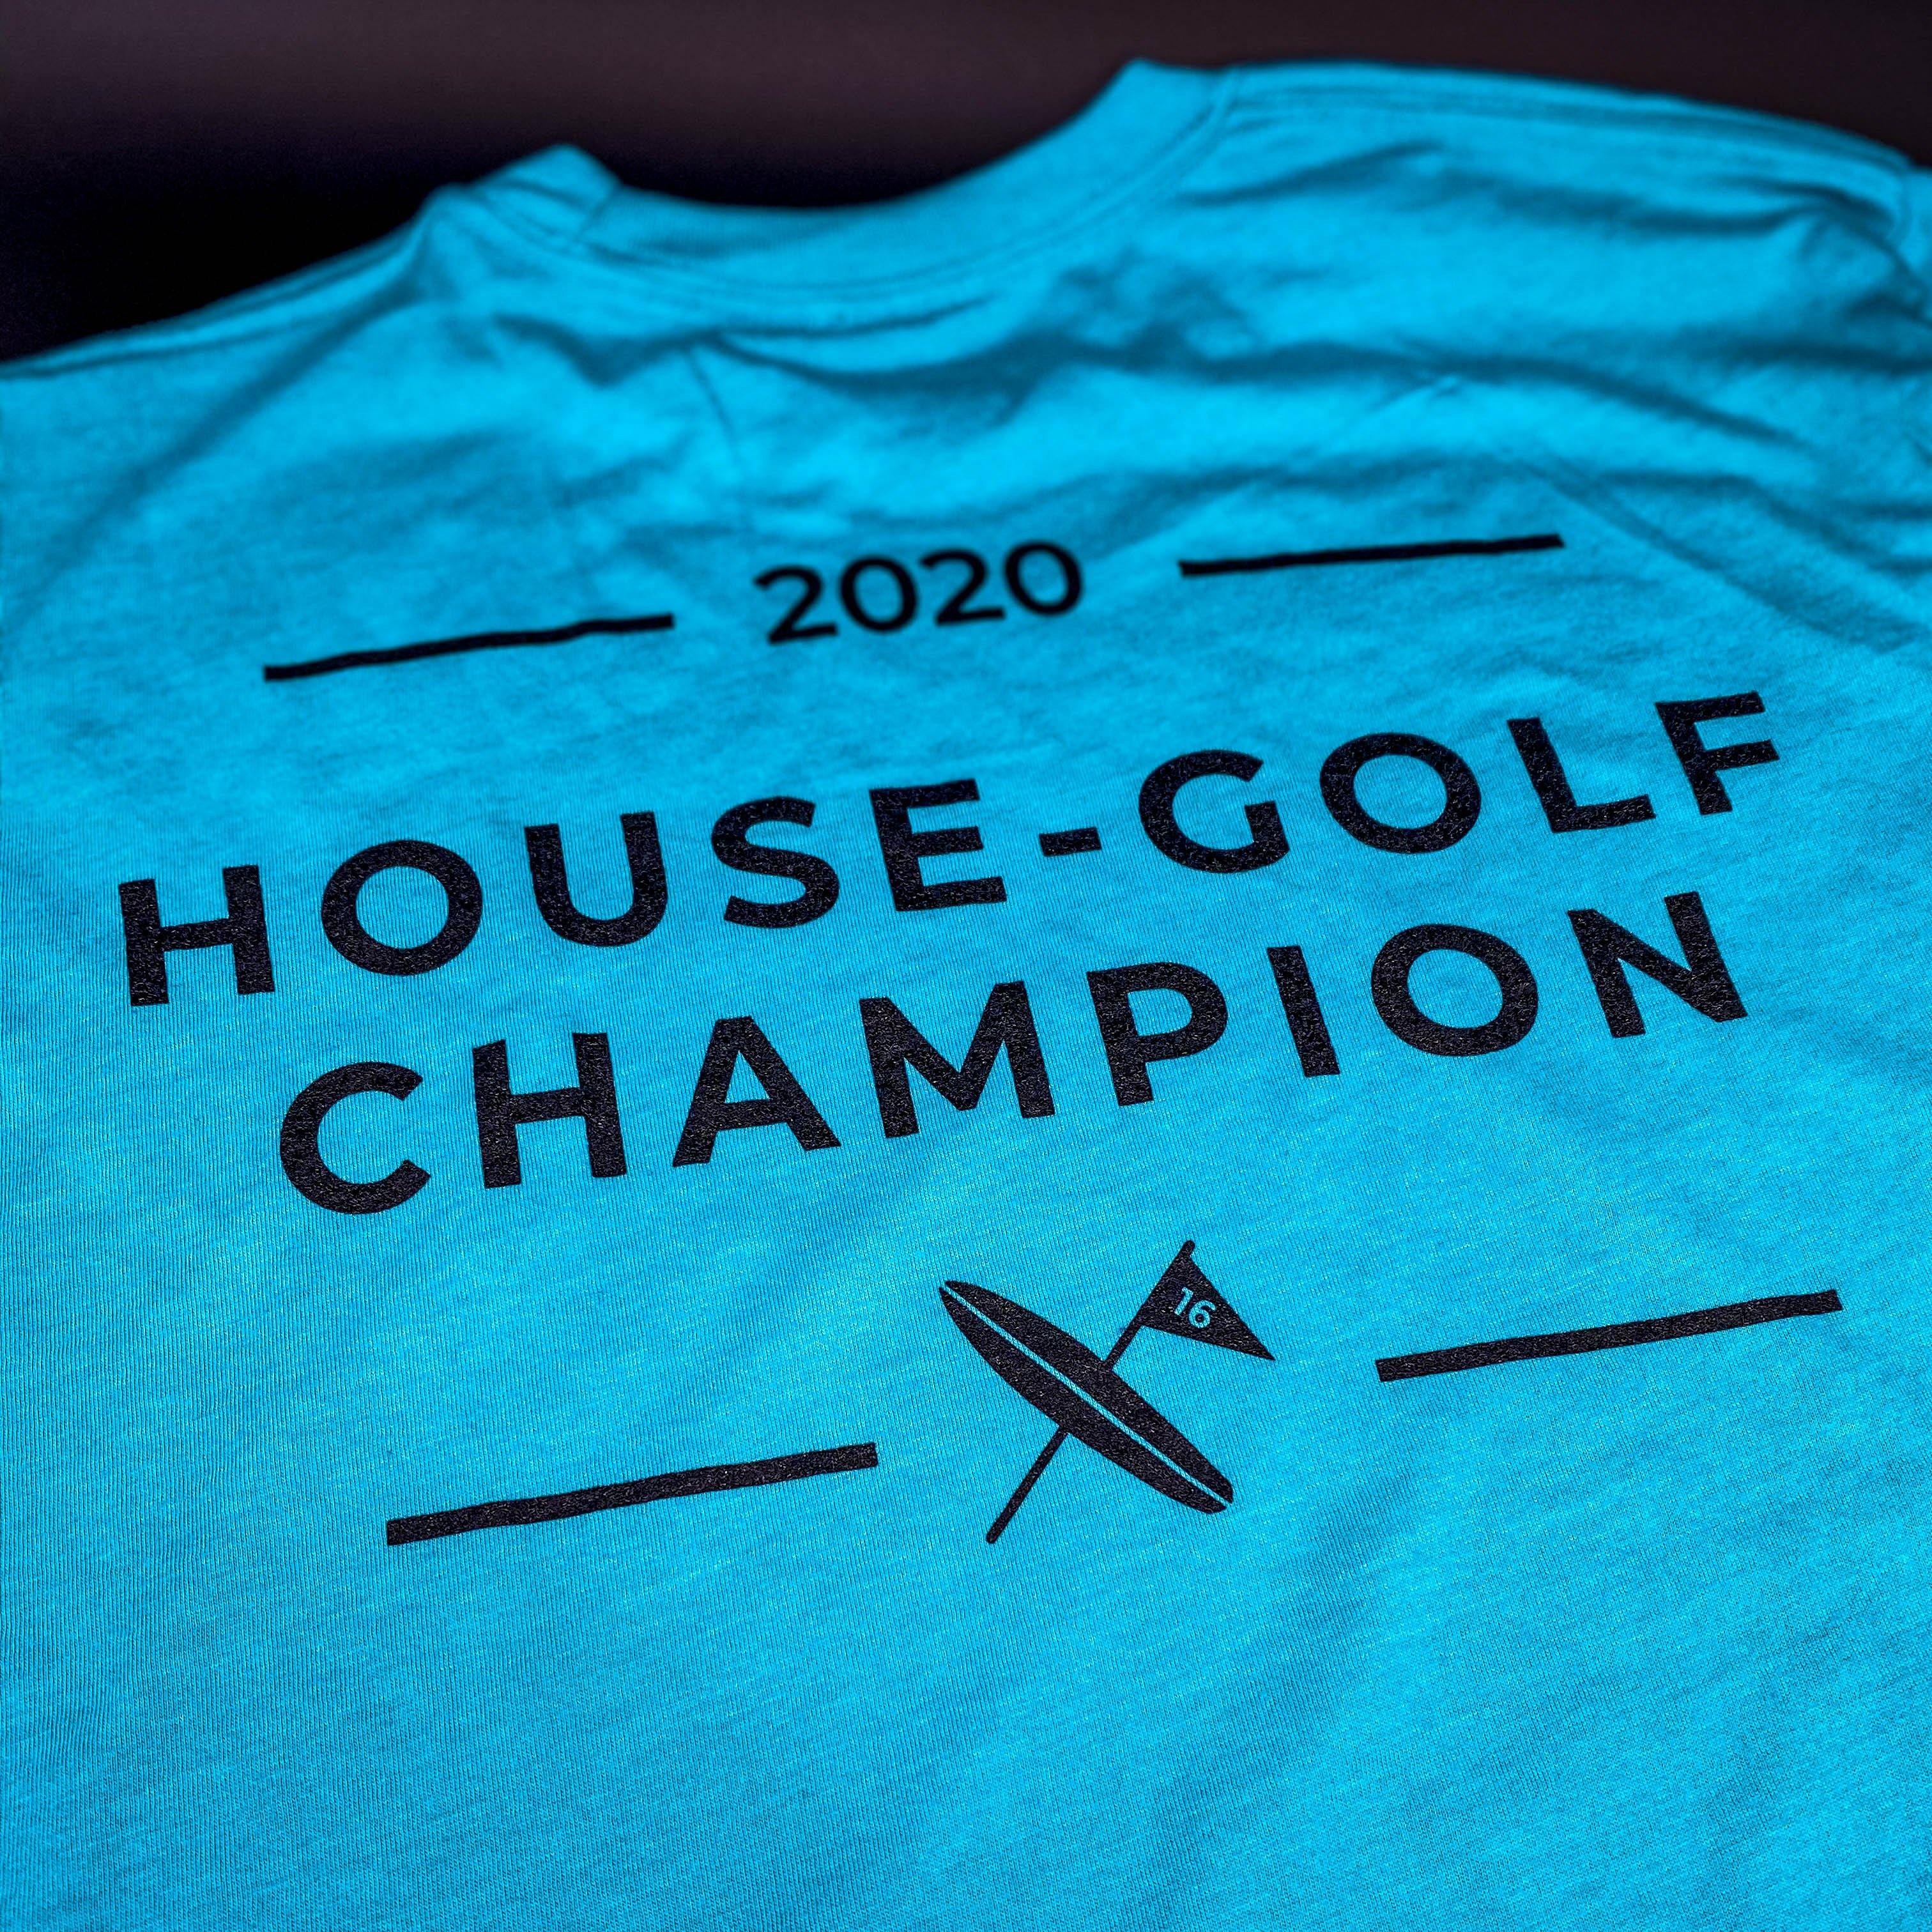 House-Golf Champion Ice - Surf & Turf Golf